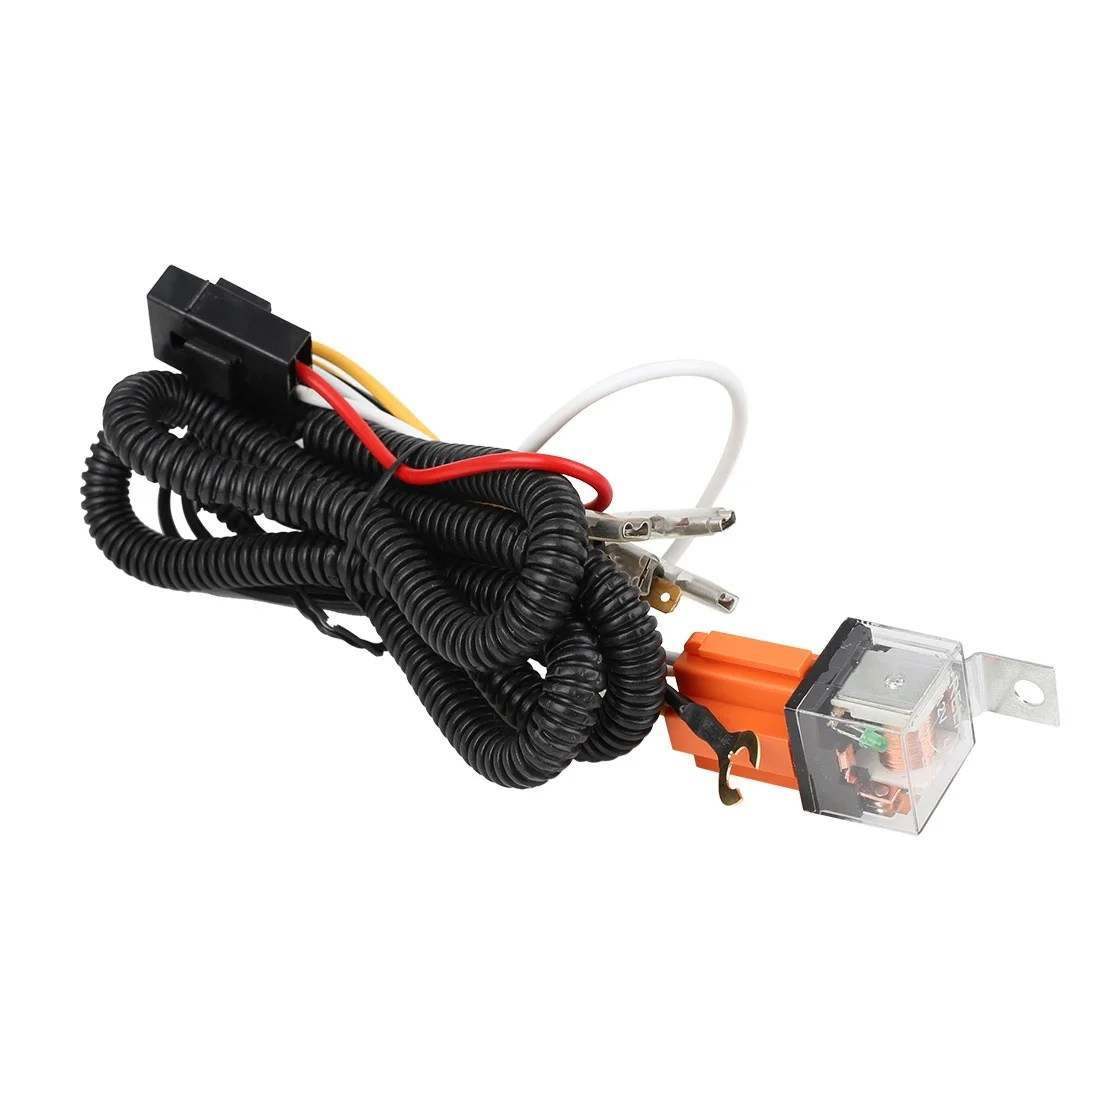 hight resolution of shop dc 12v car truck grille mount blast tone horn wiring harness relay kit black free shipping on orders over 45 overstock 27577487